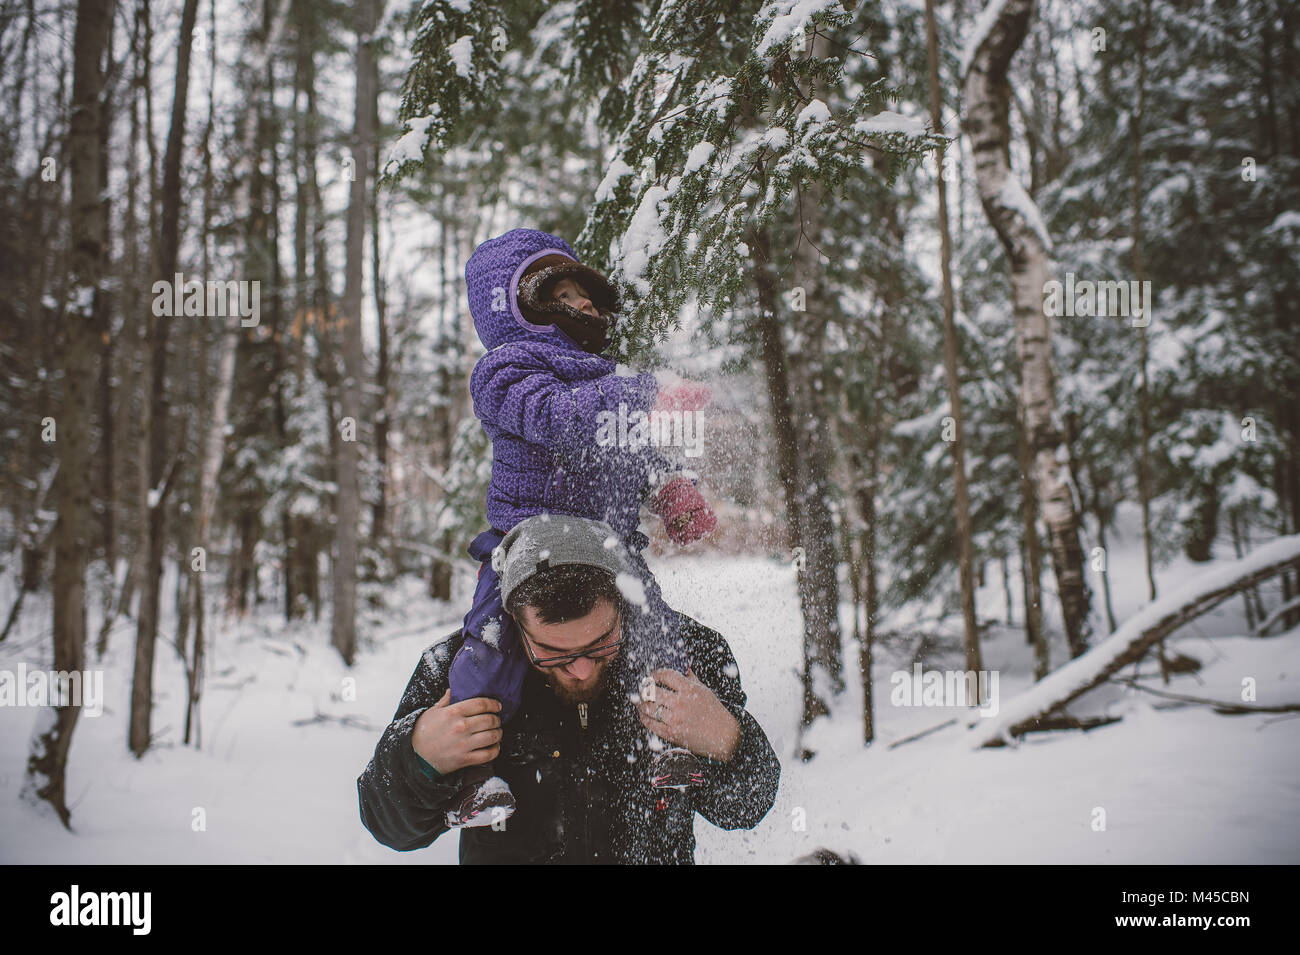 Father and daughter in snowy landscape, father carrying daughter on shoulders - Stock Image